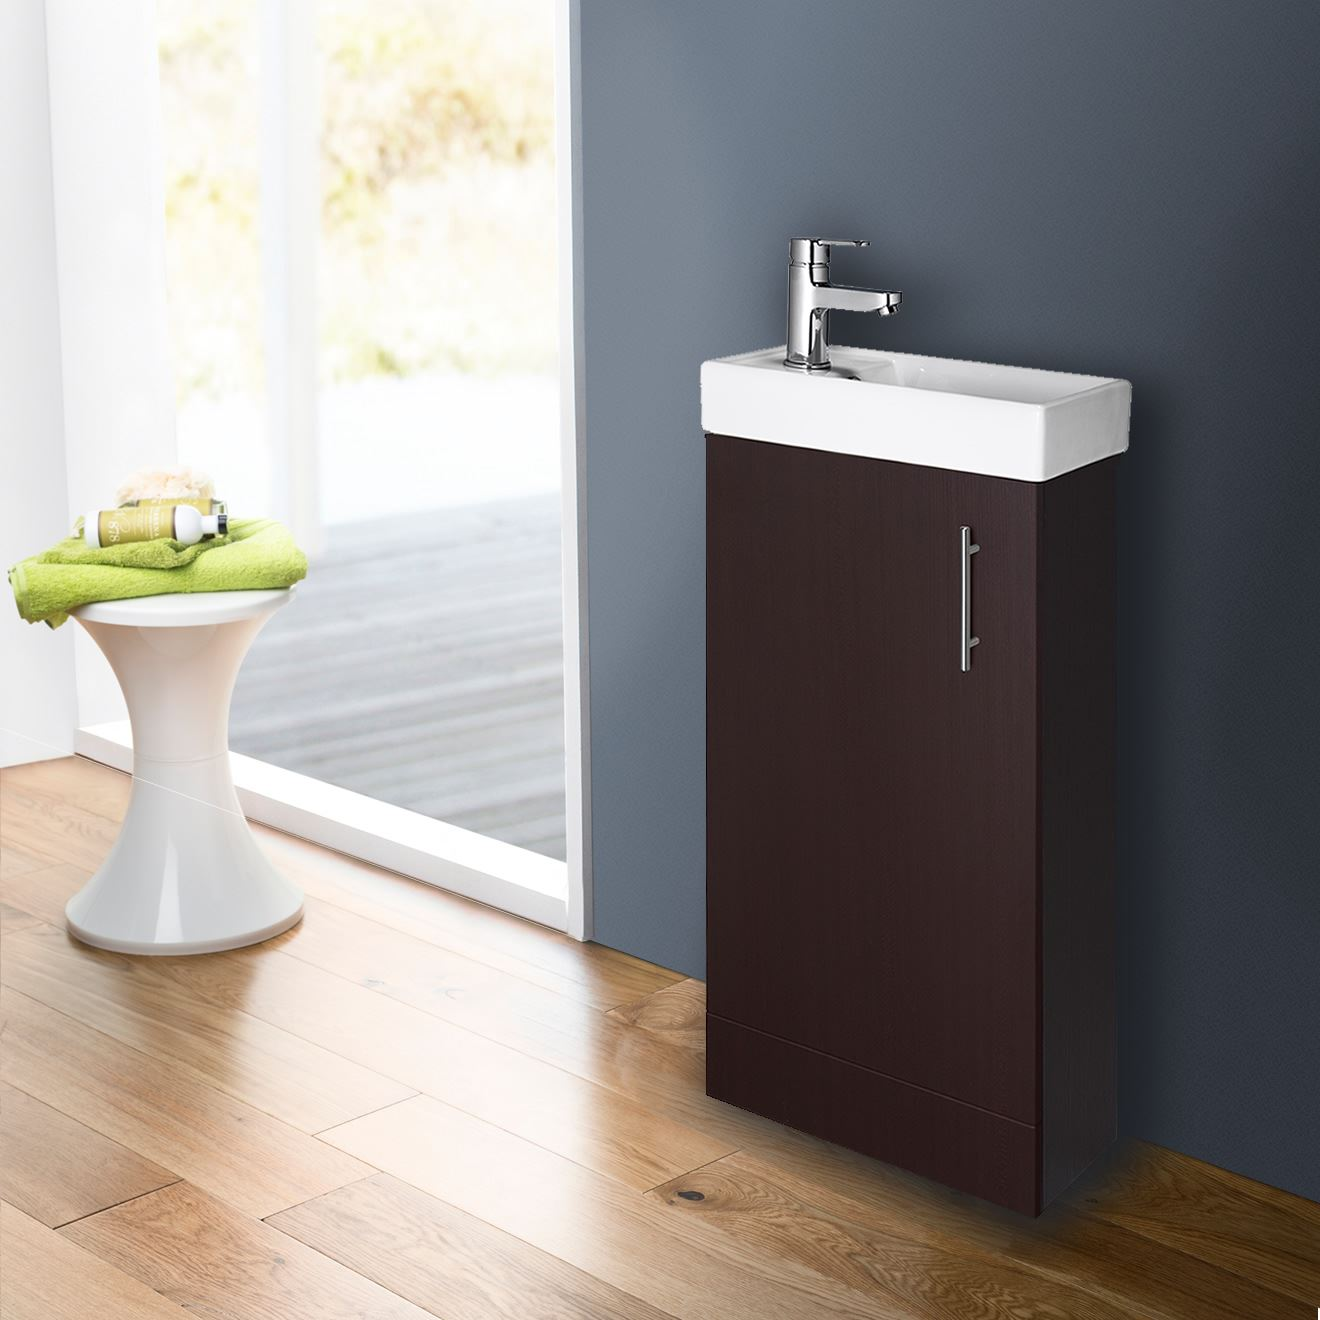 Wall Hung Cloakroom Basin Unit : ... Vanity Unit & Basin Sink Cloakroom 400mm Floor & Wall Hung eBay